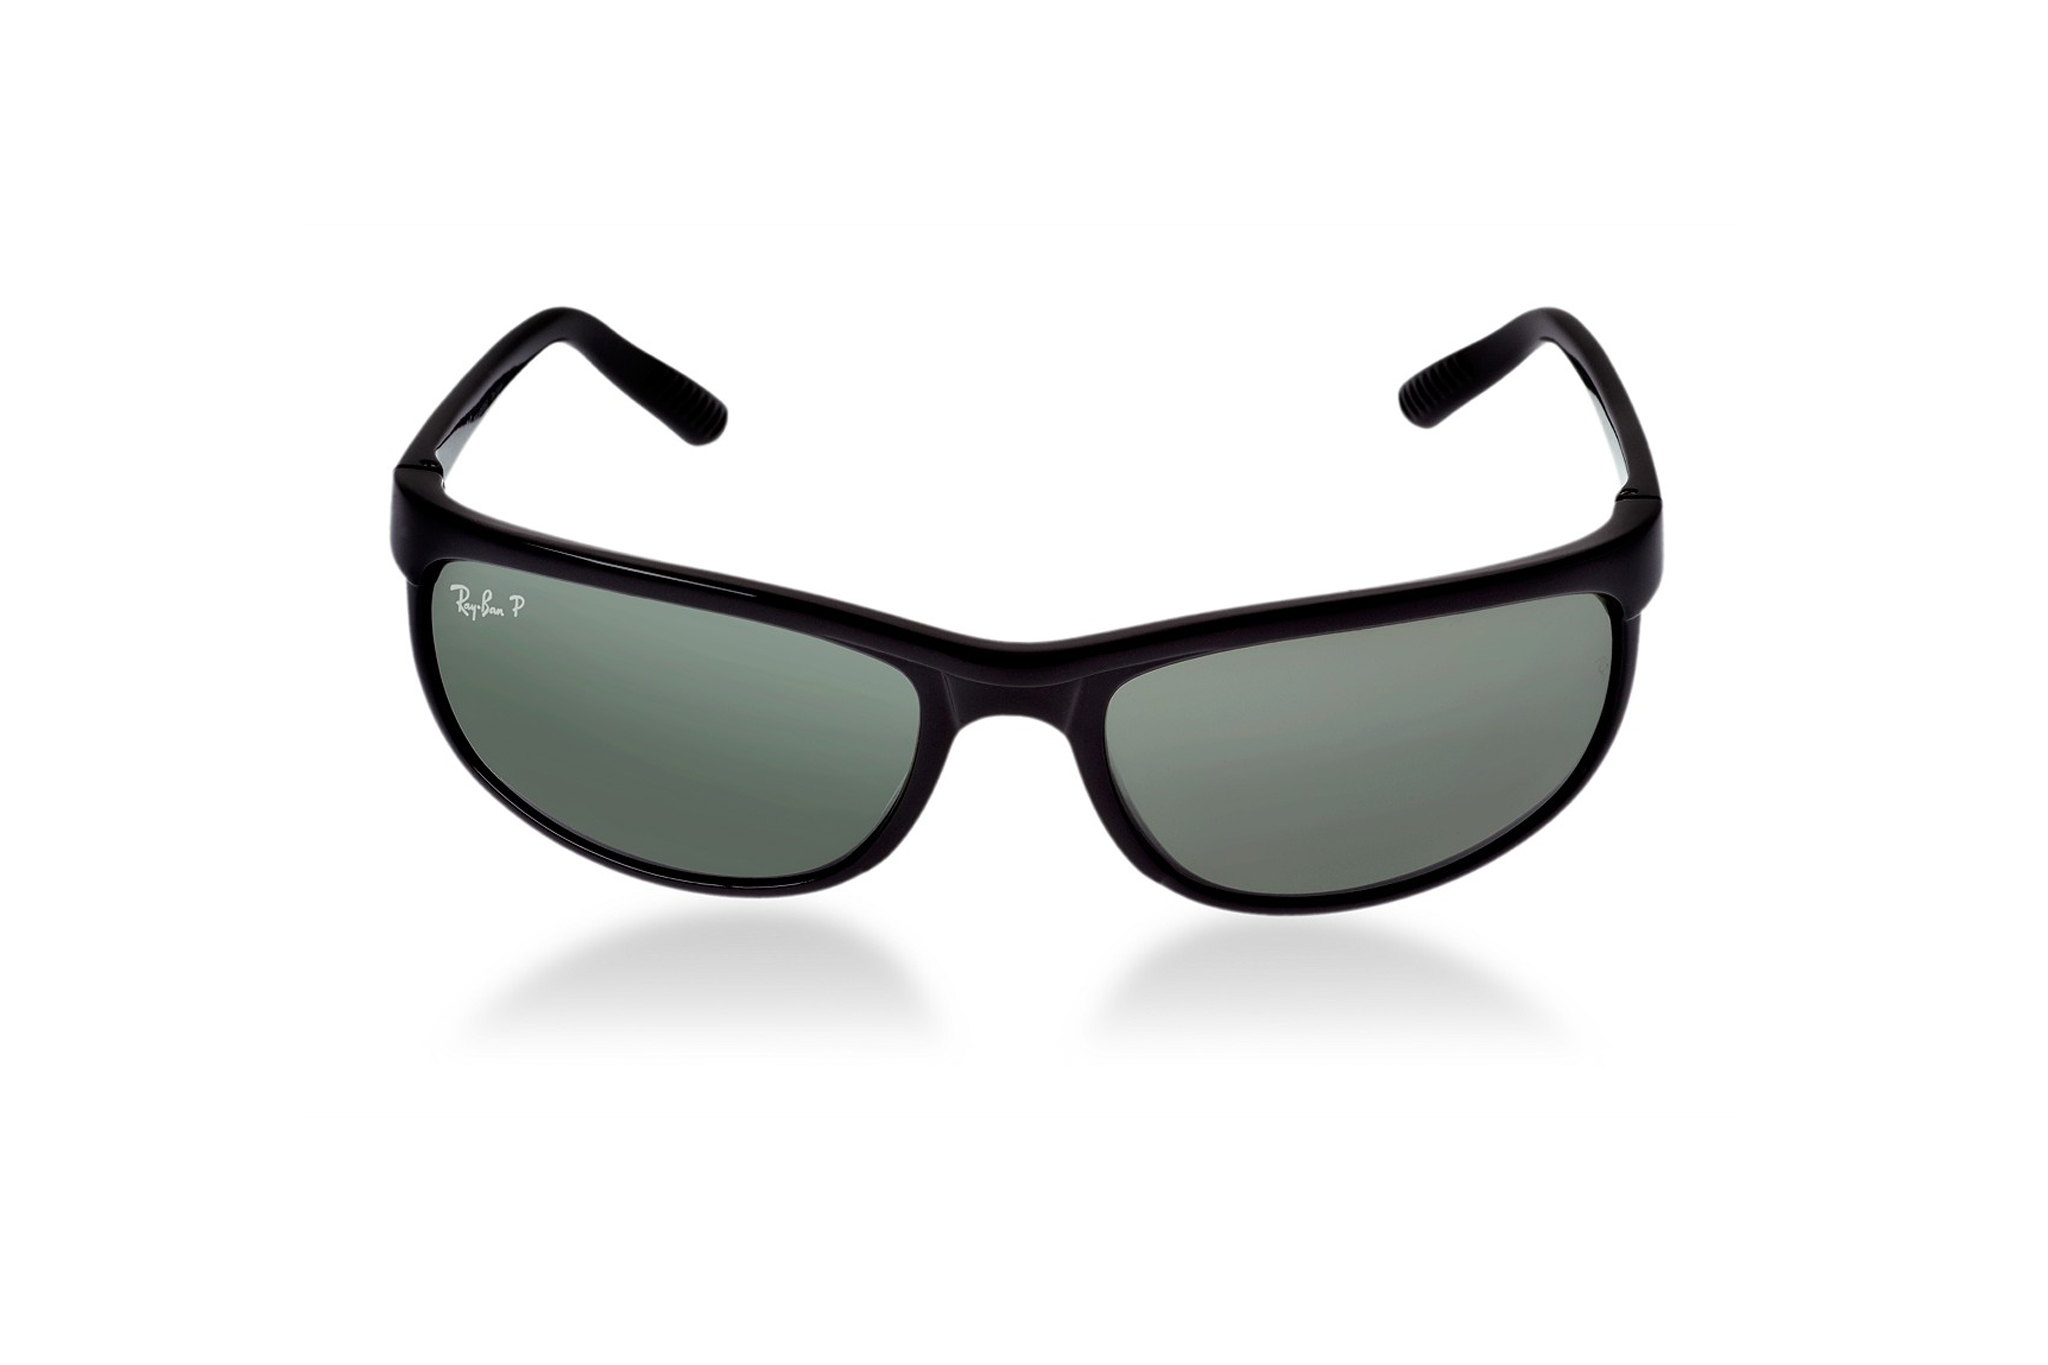 Ray-Ban Polarized Predator 2 Sunglasses